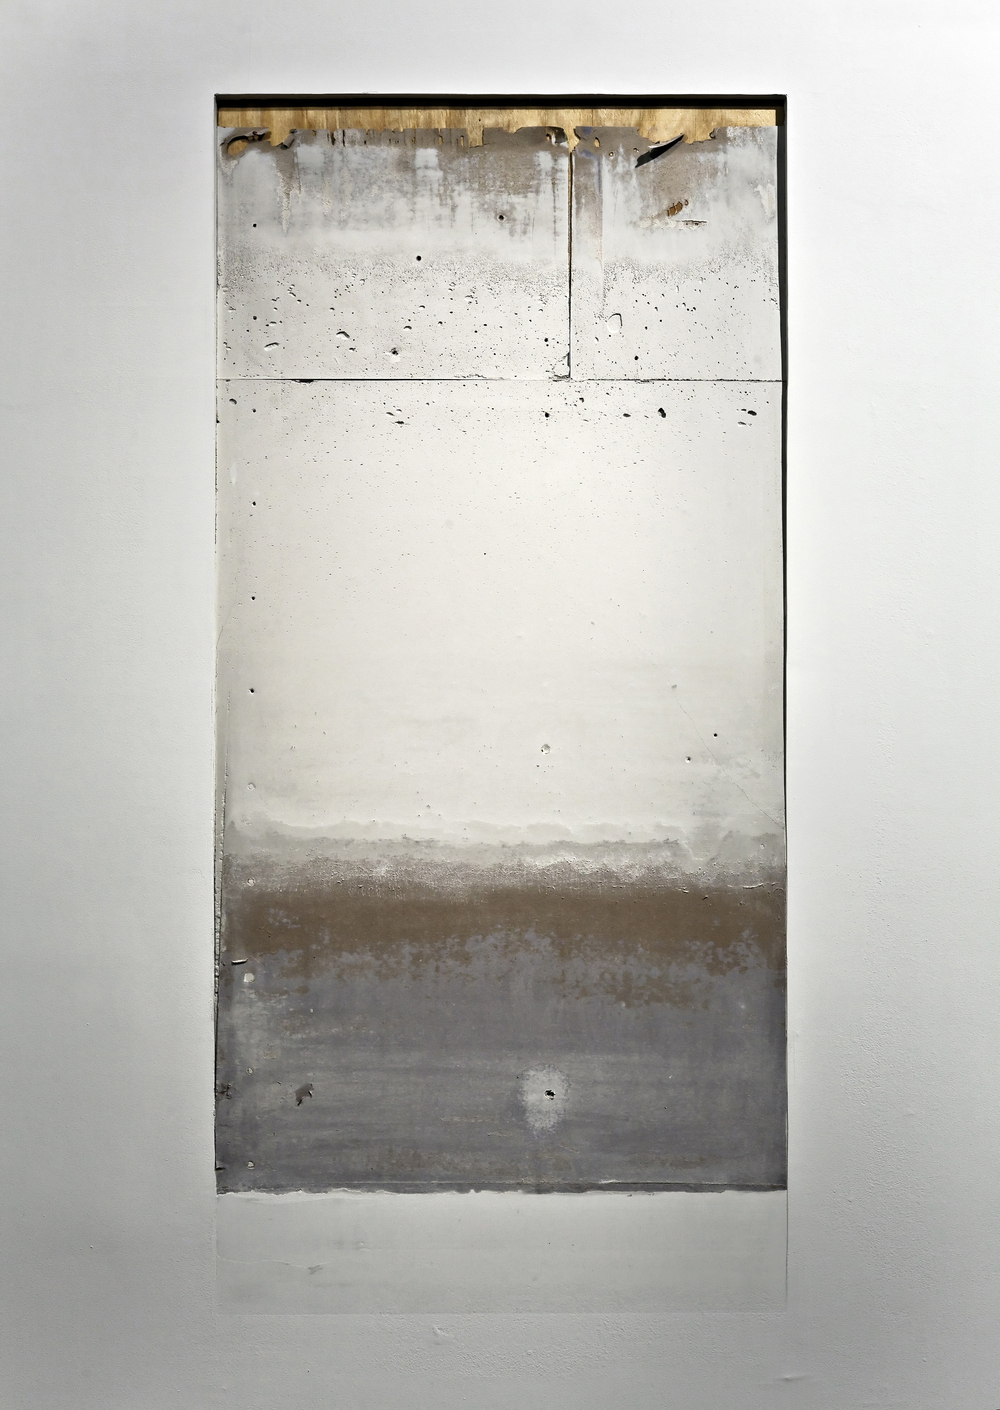 Wilson Lawrence, Sift, 2010, Museum wall, 52 x 24 x —½ inches Courtesy of the artist